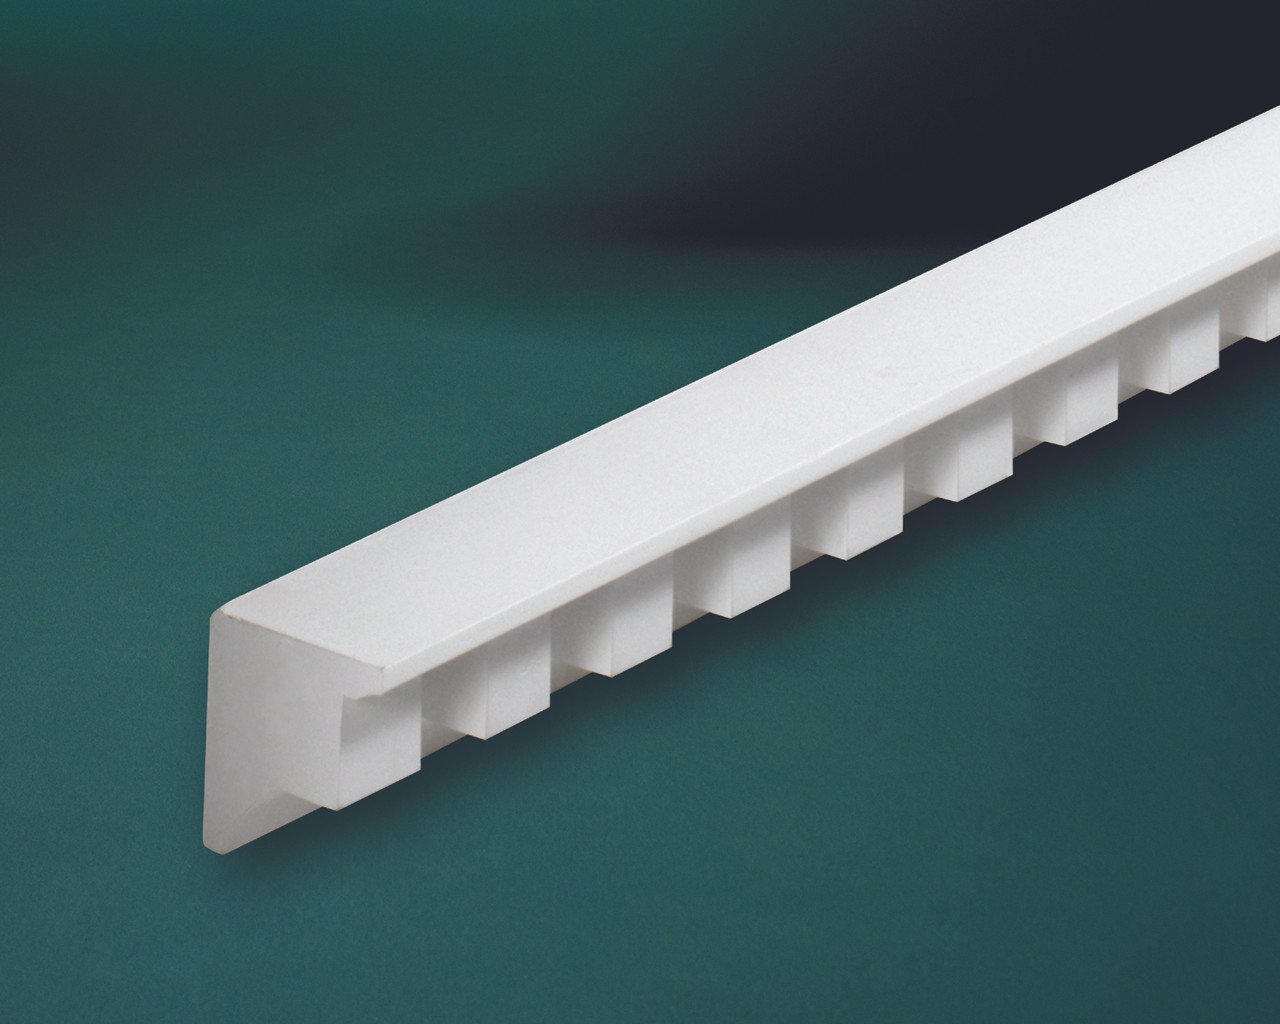 Mld313 8 for Fypon quick rail